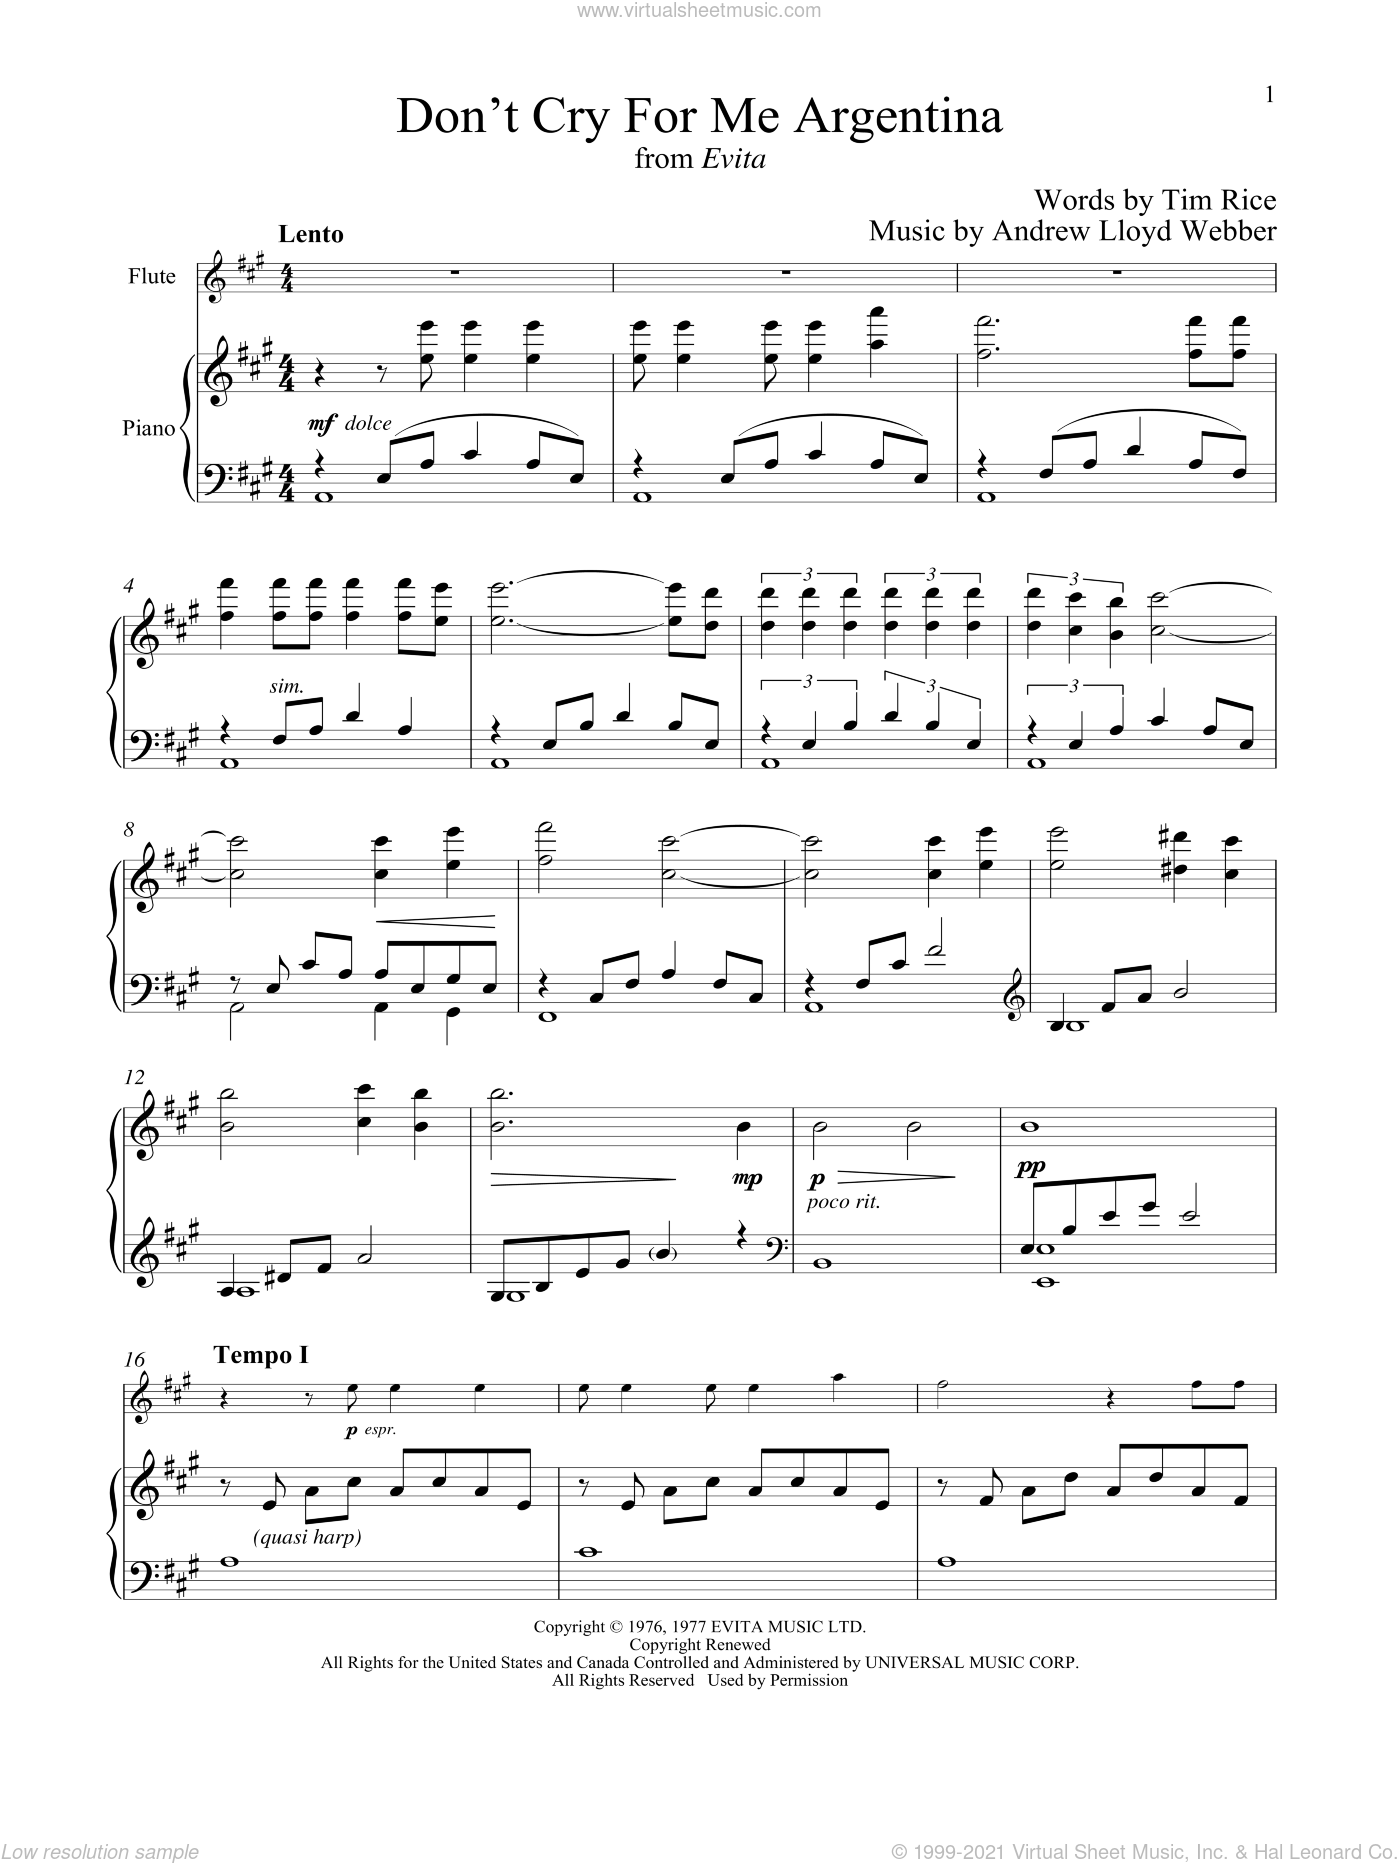 Don't Cry For Me Argentina (from Evita) sheet music for flute and piano by Andrew Lloyd Webber, Madonna and Tim Rice, intermediate skill level